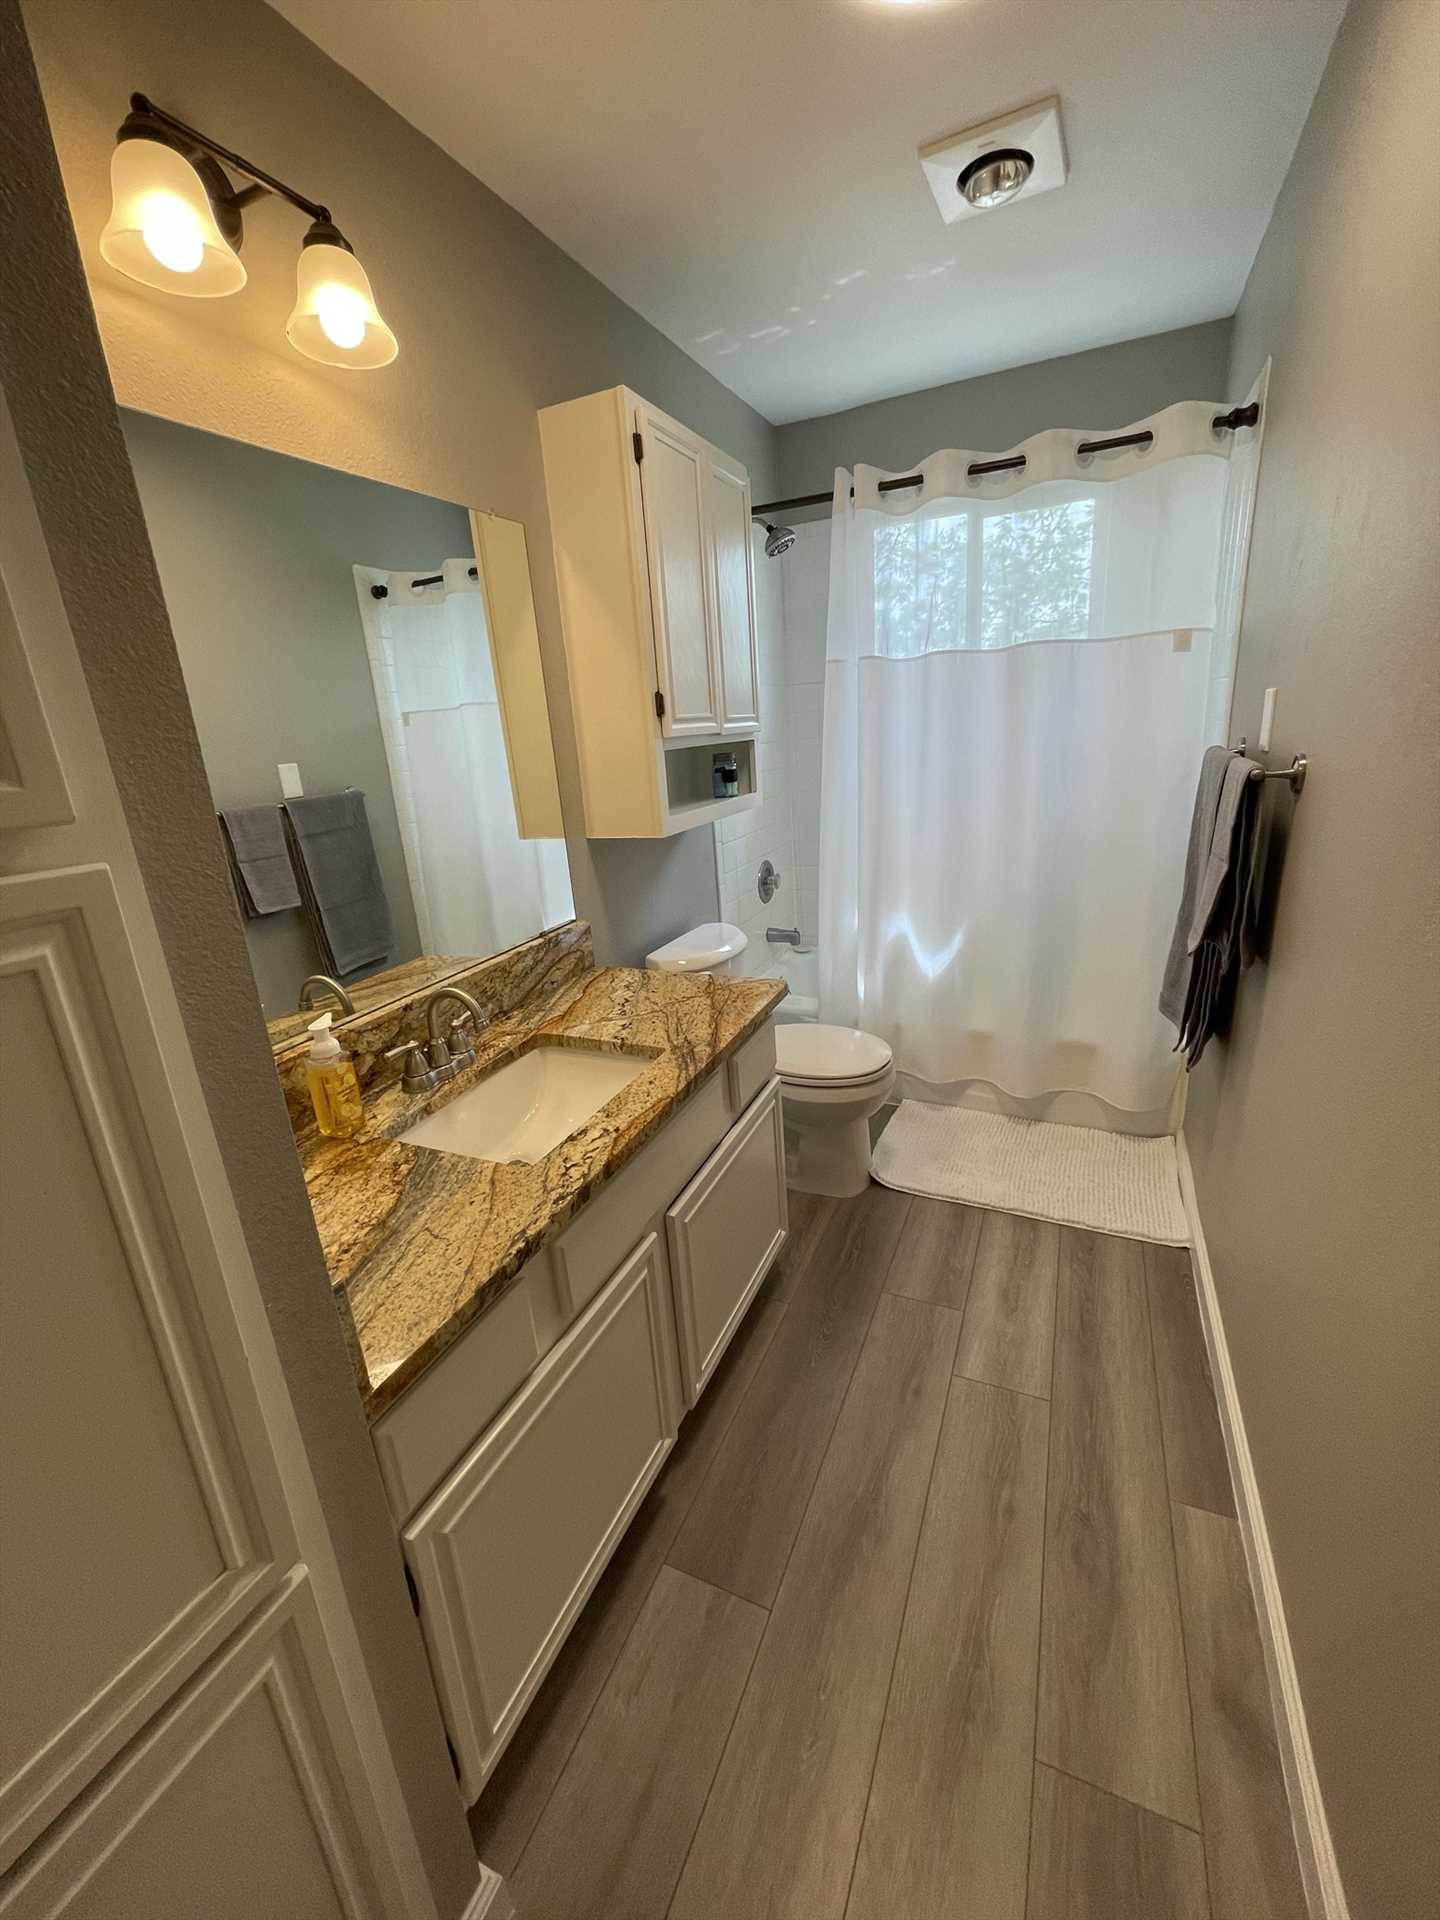 Upstairs features a full bath with a shower and tub combo. Both baths include fluffy and clean bathroom linens.